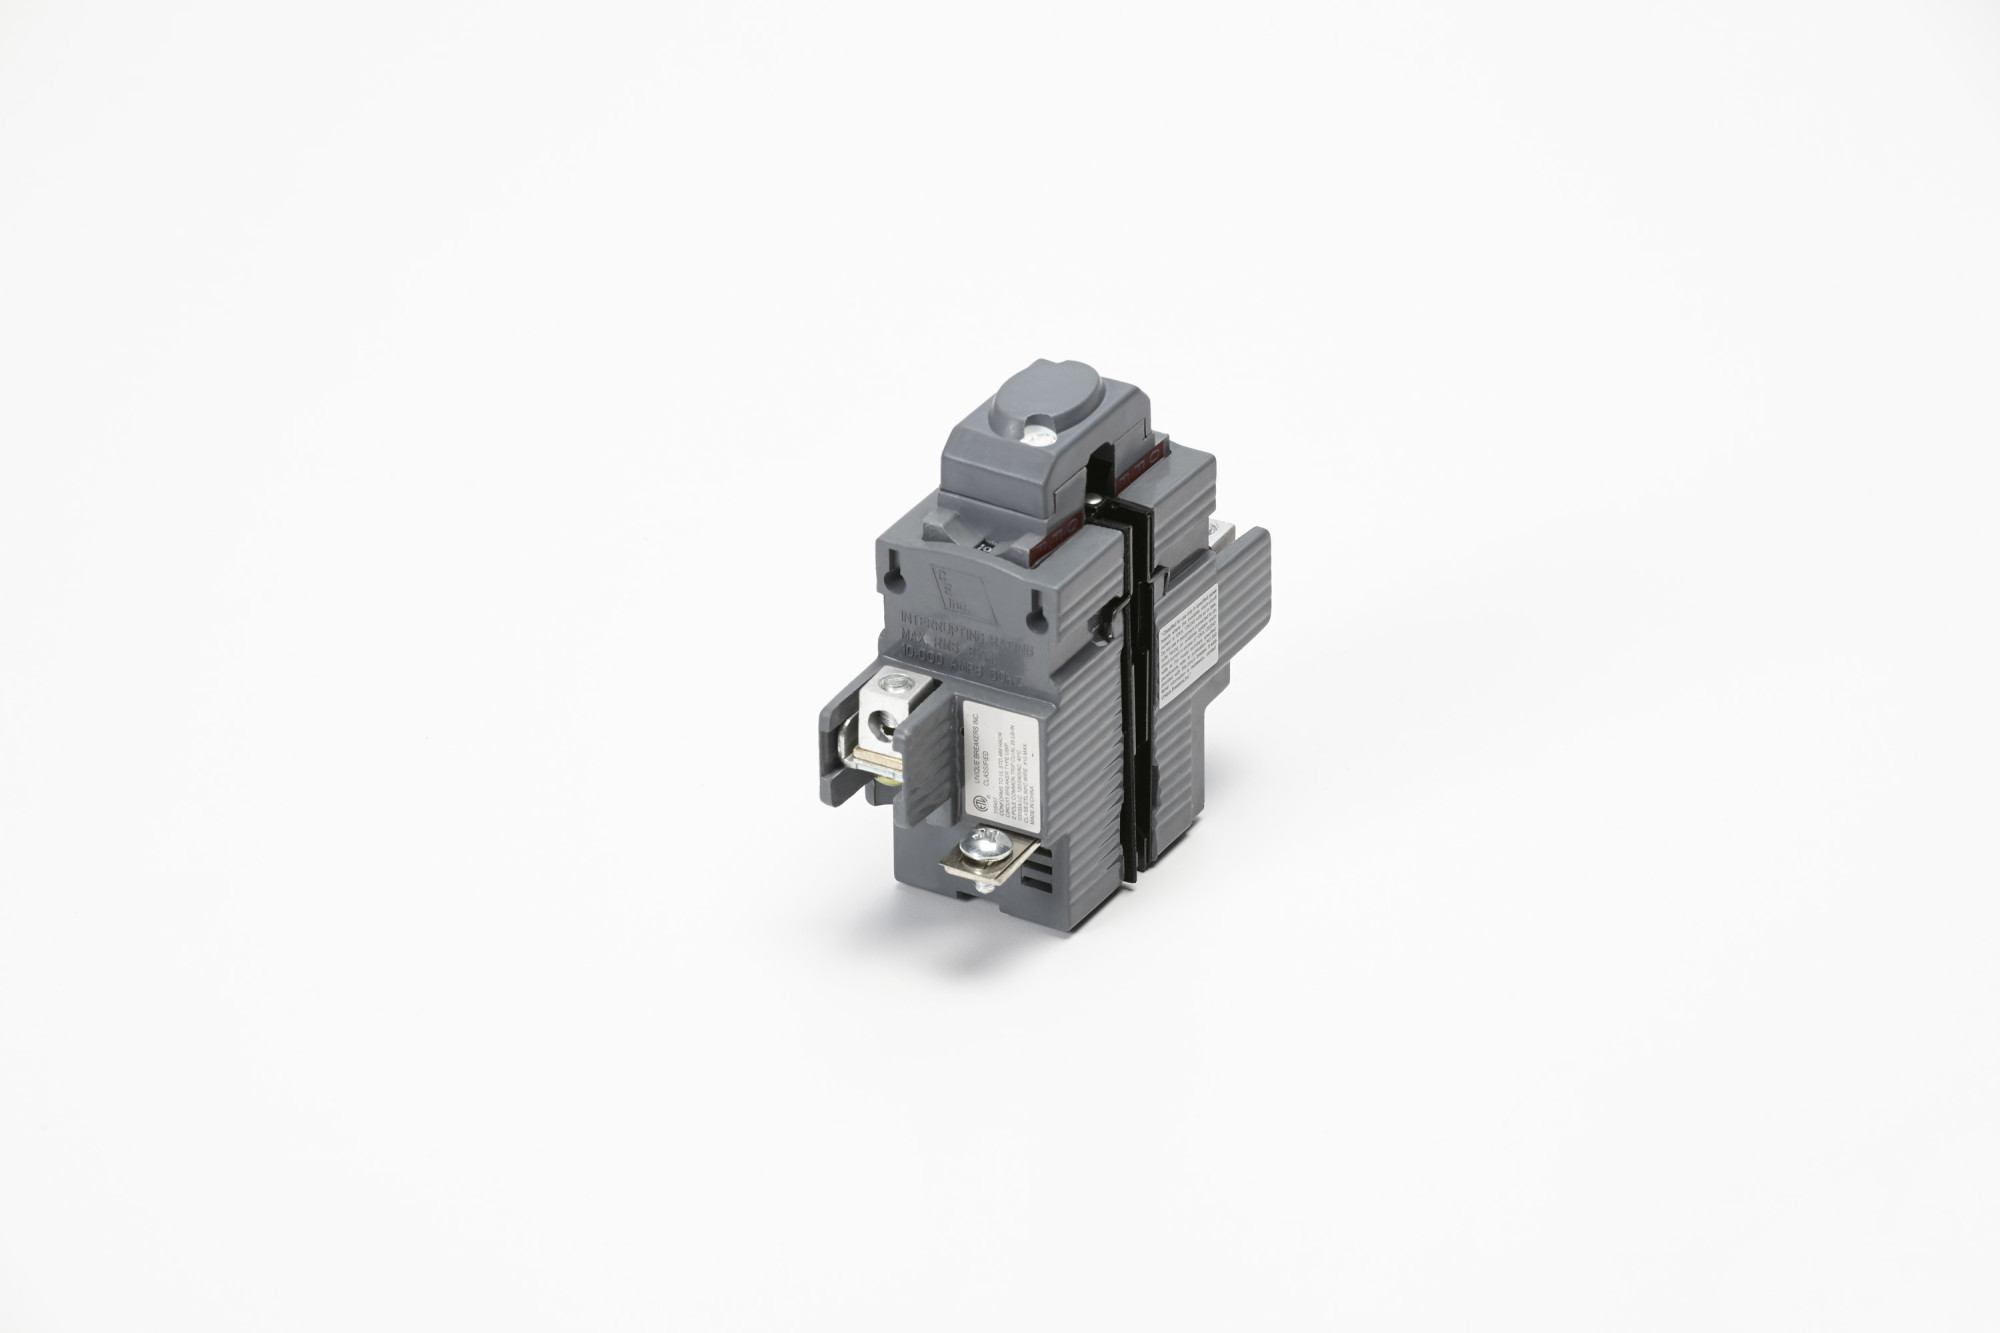 Two Pole 30 Amp Circuit Breaker Manufactured by Connecticut Electric UBIP230-New Pushmatic  P230 Replacement 0234-100524-3817